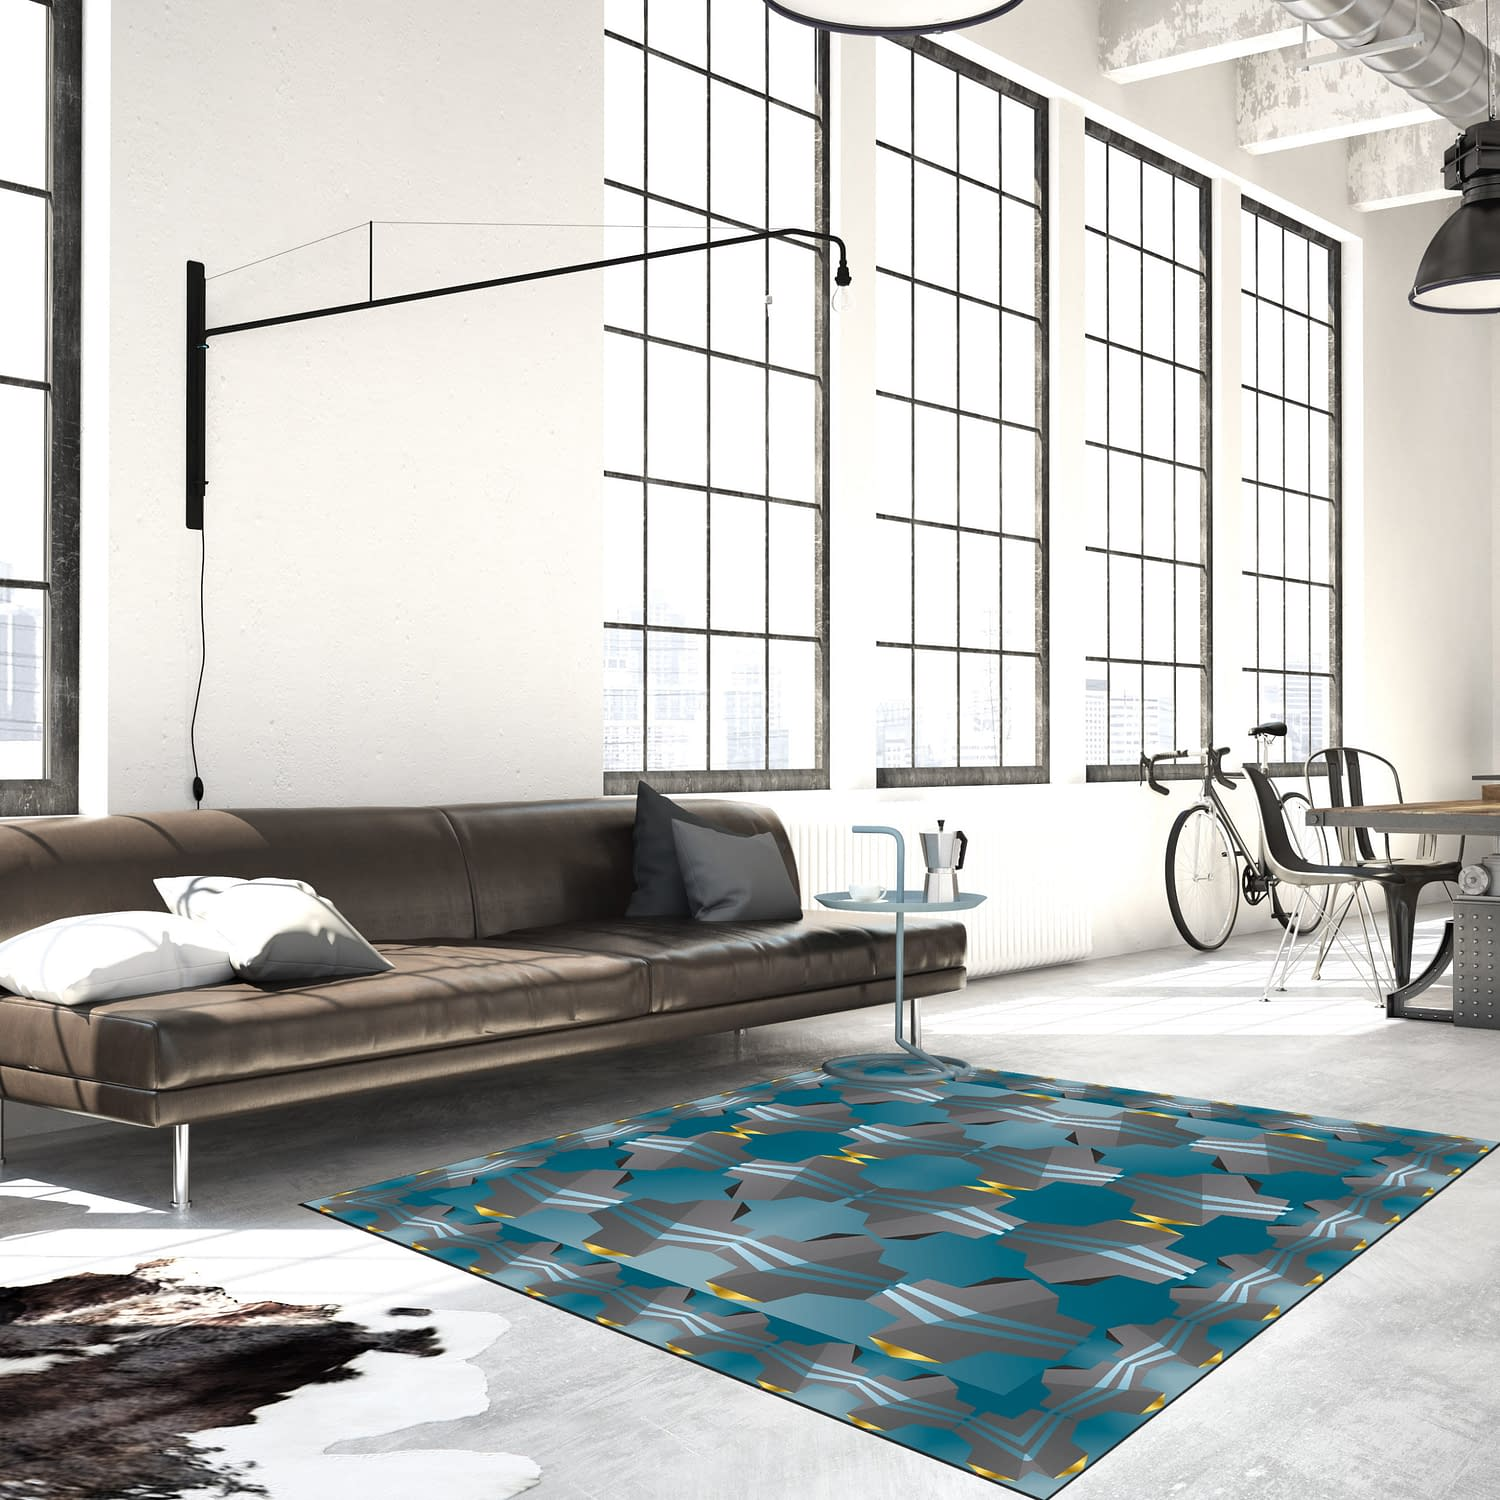 Spiral stairs and living room in modern loft.3d rendering